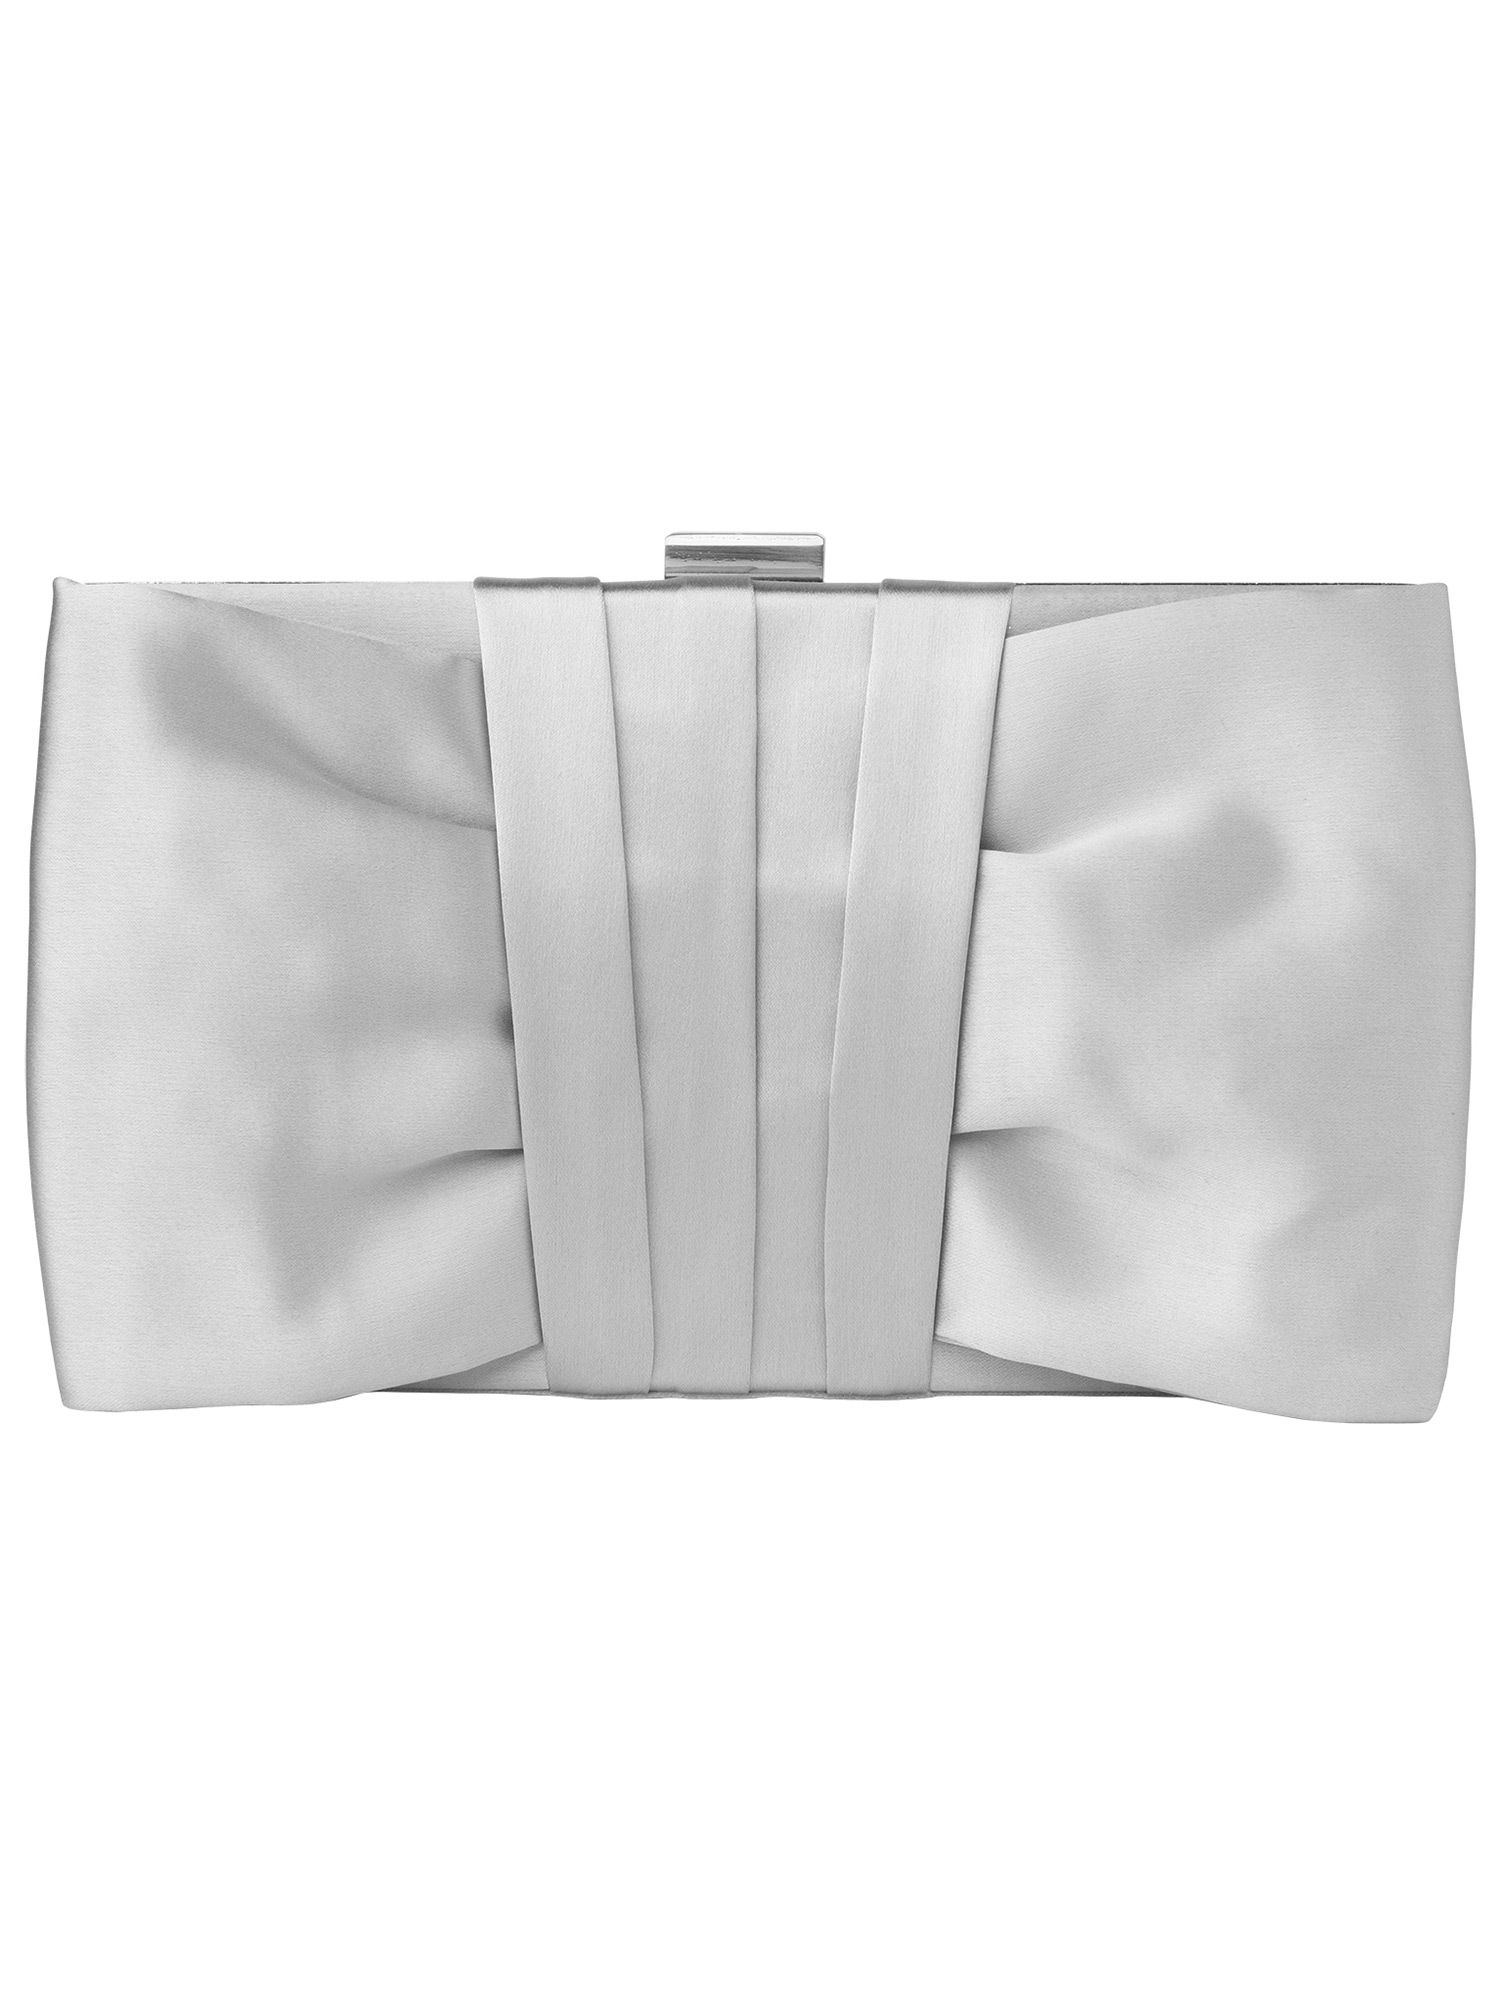 Yasmin satin clutch bag